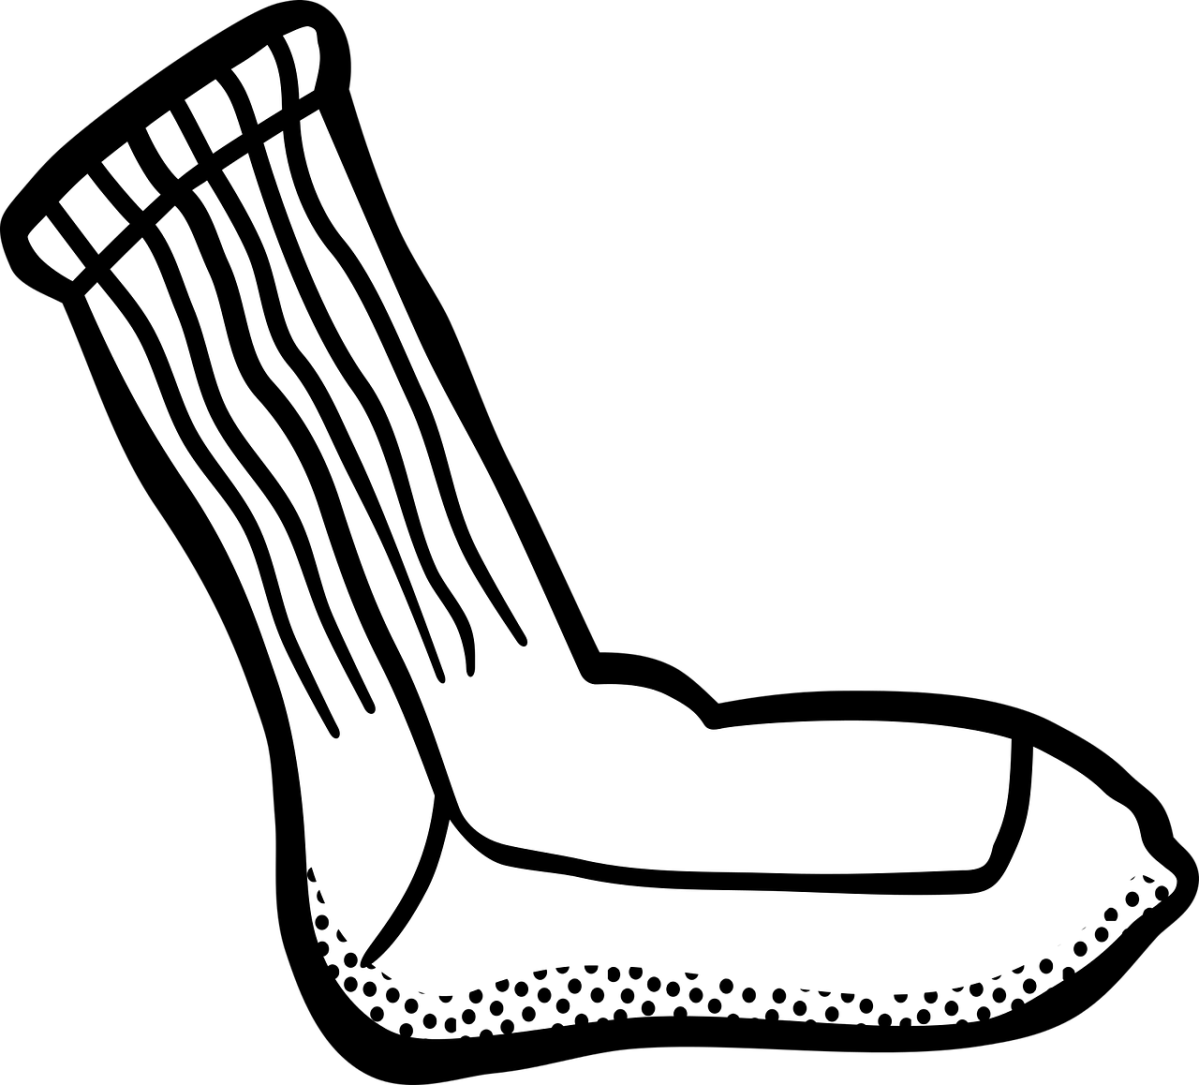 clipart showing a single, white sock.